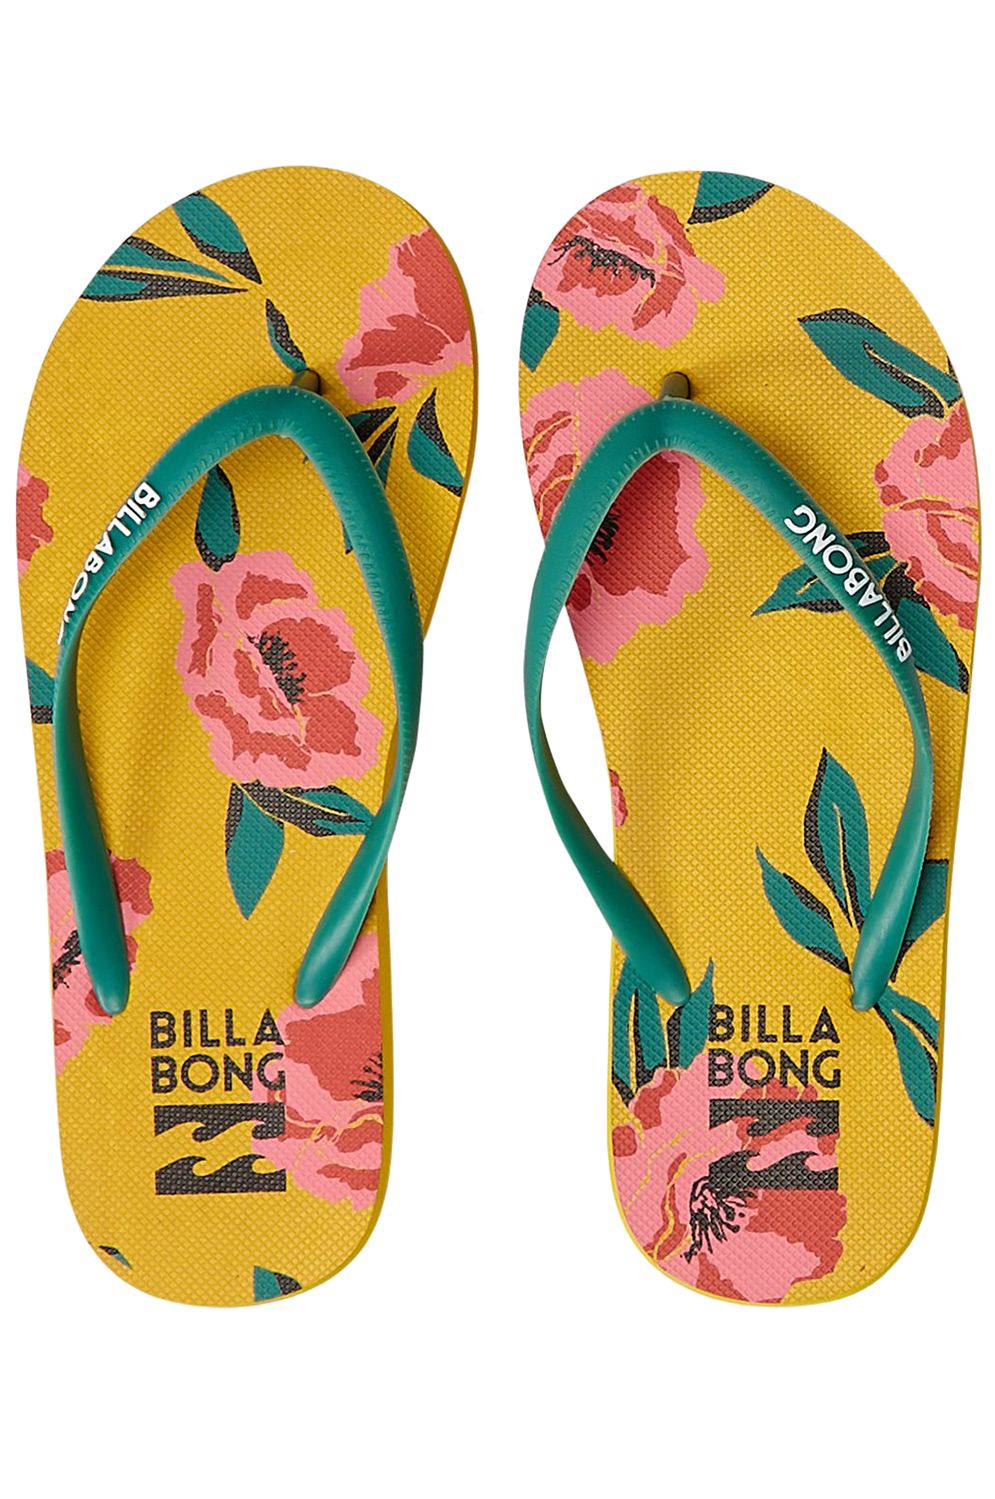 Chinelos Billabong DAMA COSTA DEL SOL Golden Glow